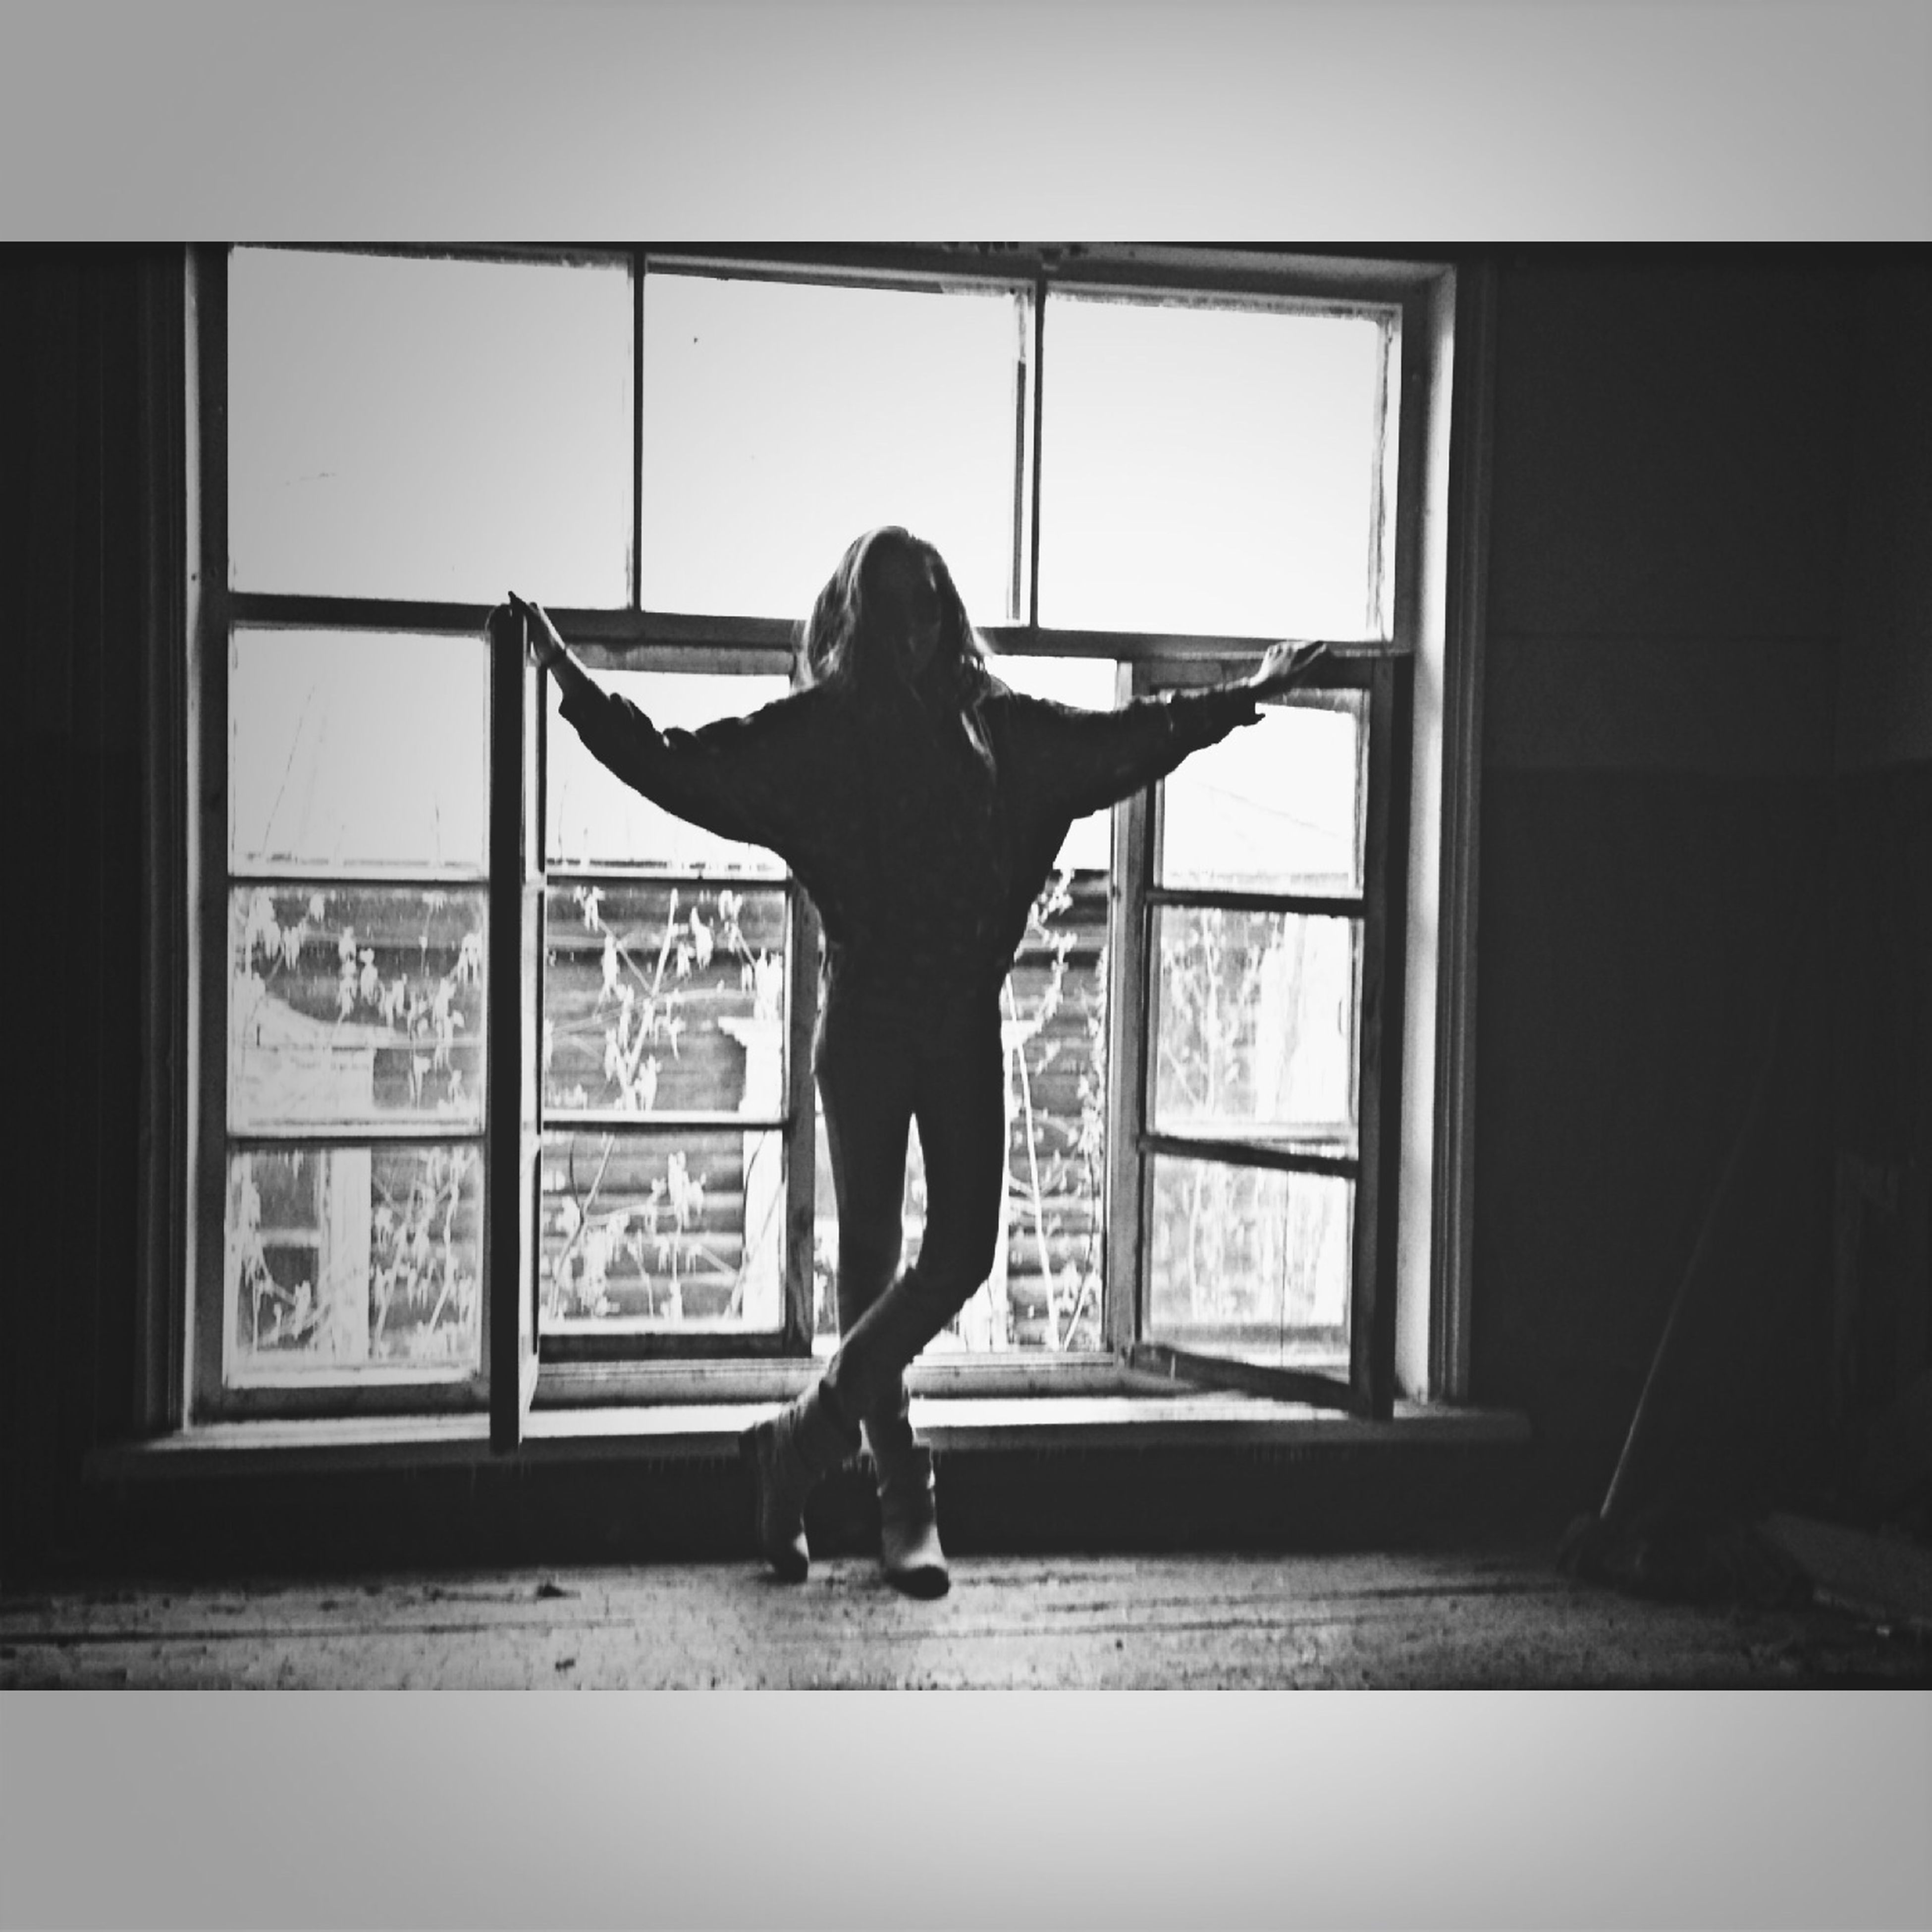 full length, indoors, young adult, lifestyles, standing, young women, casual clothing, rear view, window, architecture, leisure activity, built structure, person, front view, looking through window, side view, day, long hair